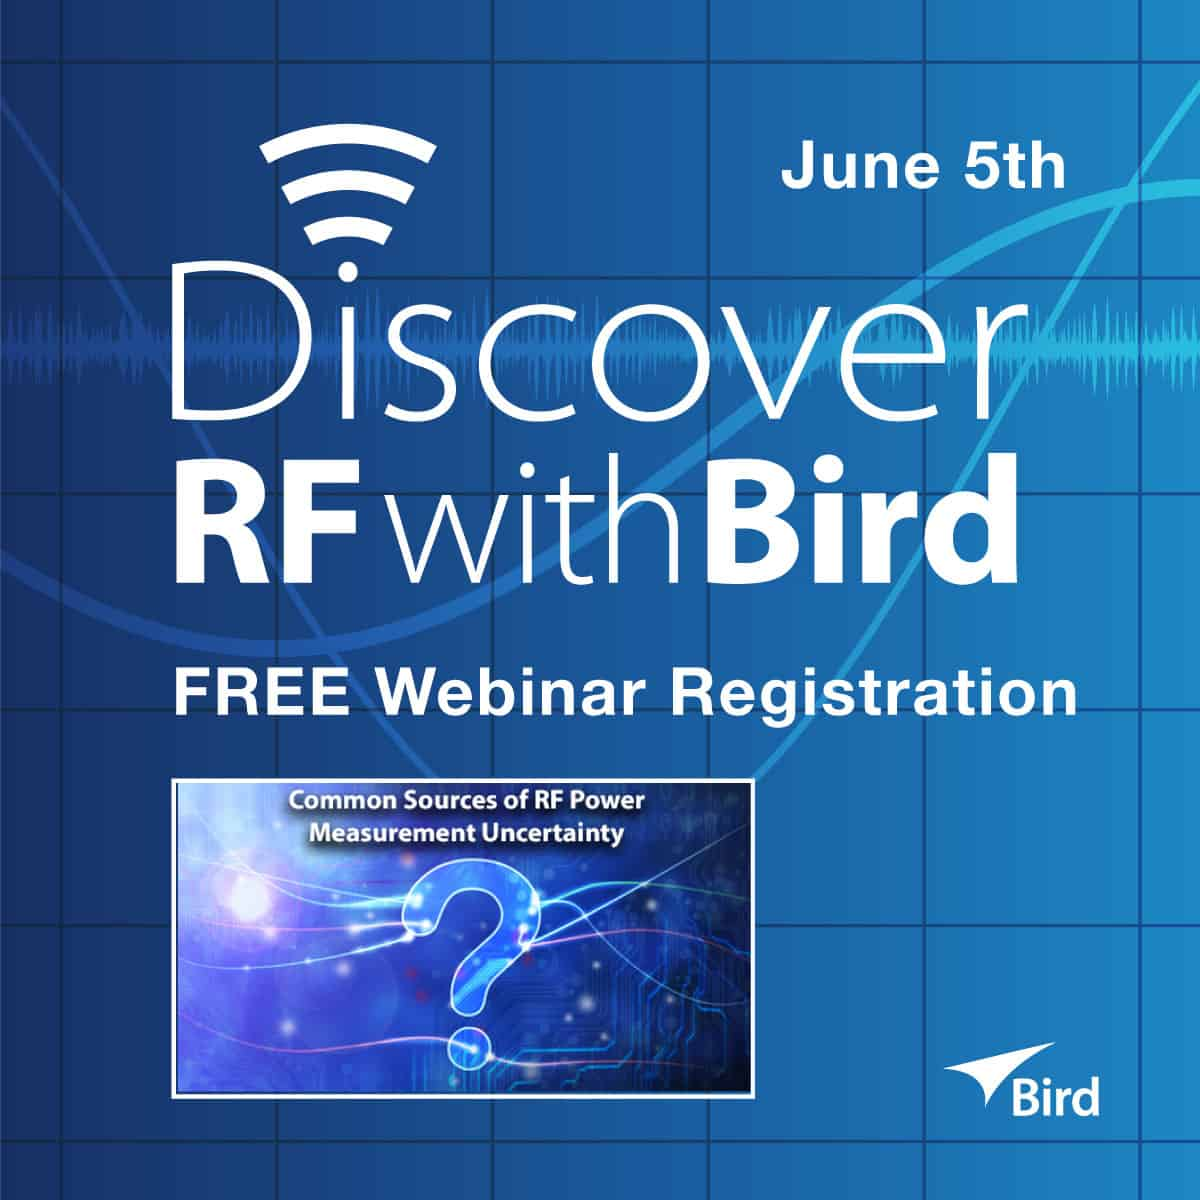 Bird Webinar: Common Sources of RF Power Measurement Uncertainty